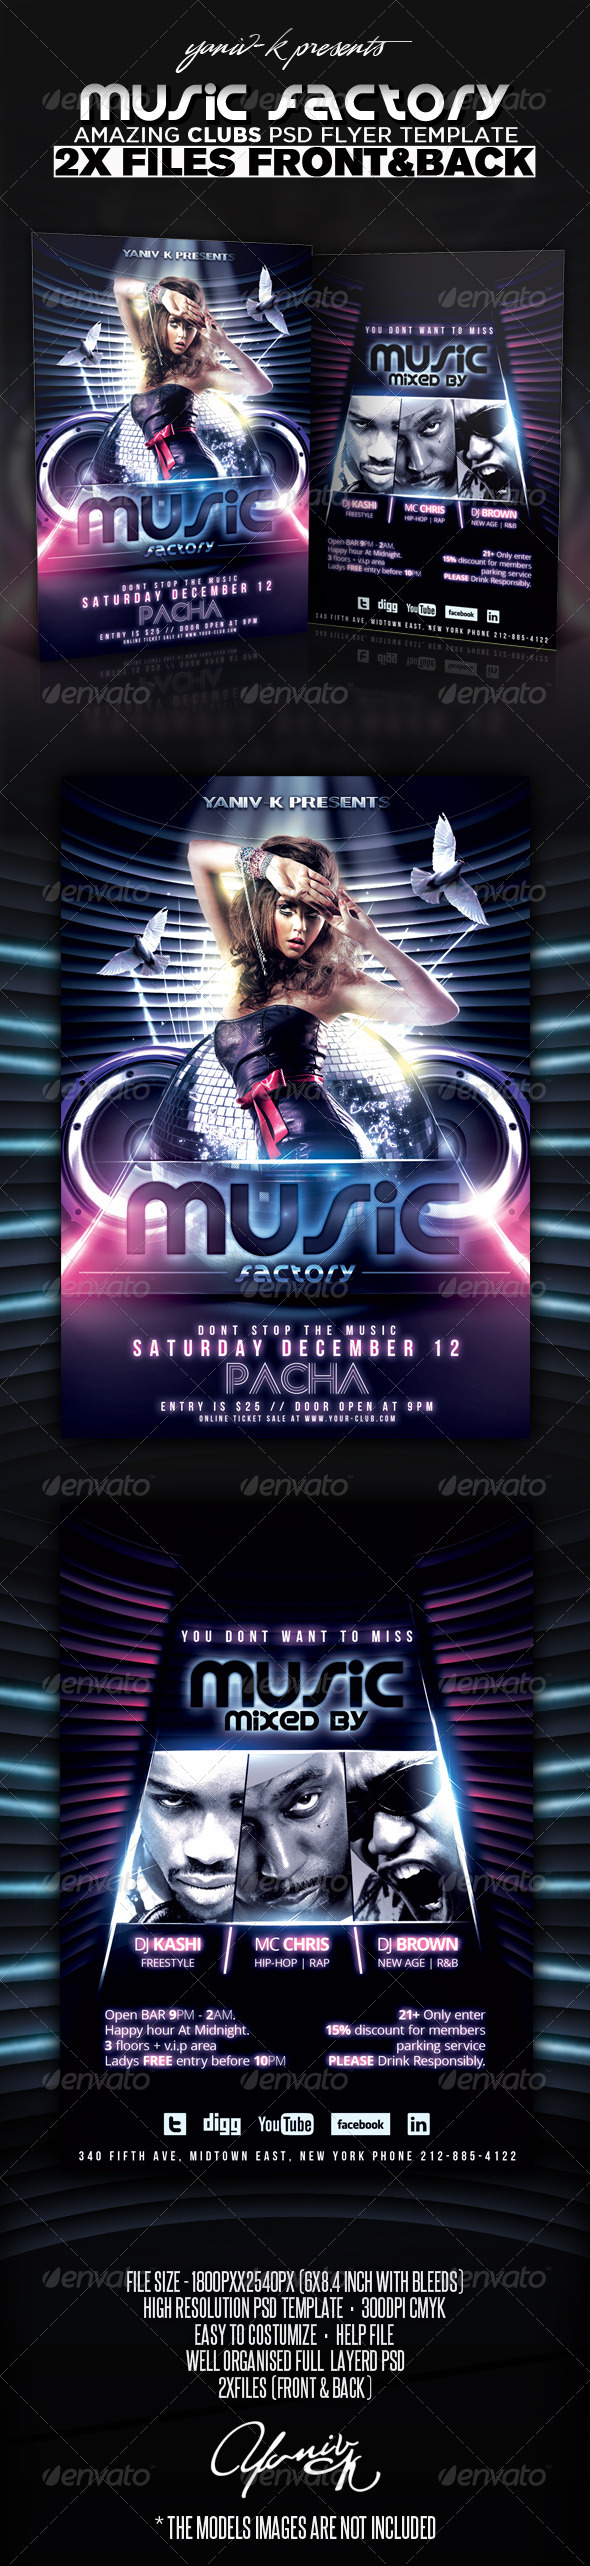 Music Factory Flyer Template  - Clubs & Parties Events